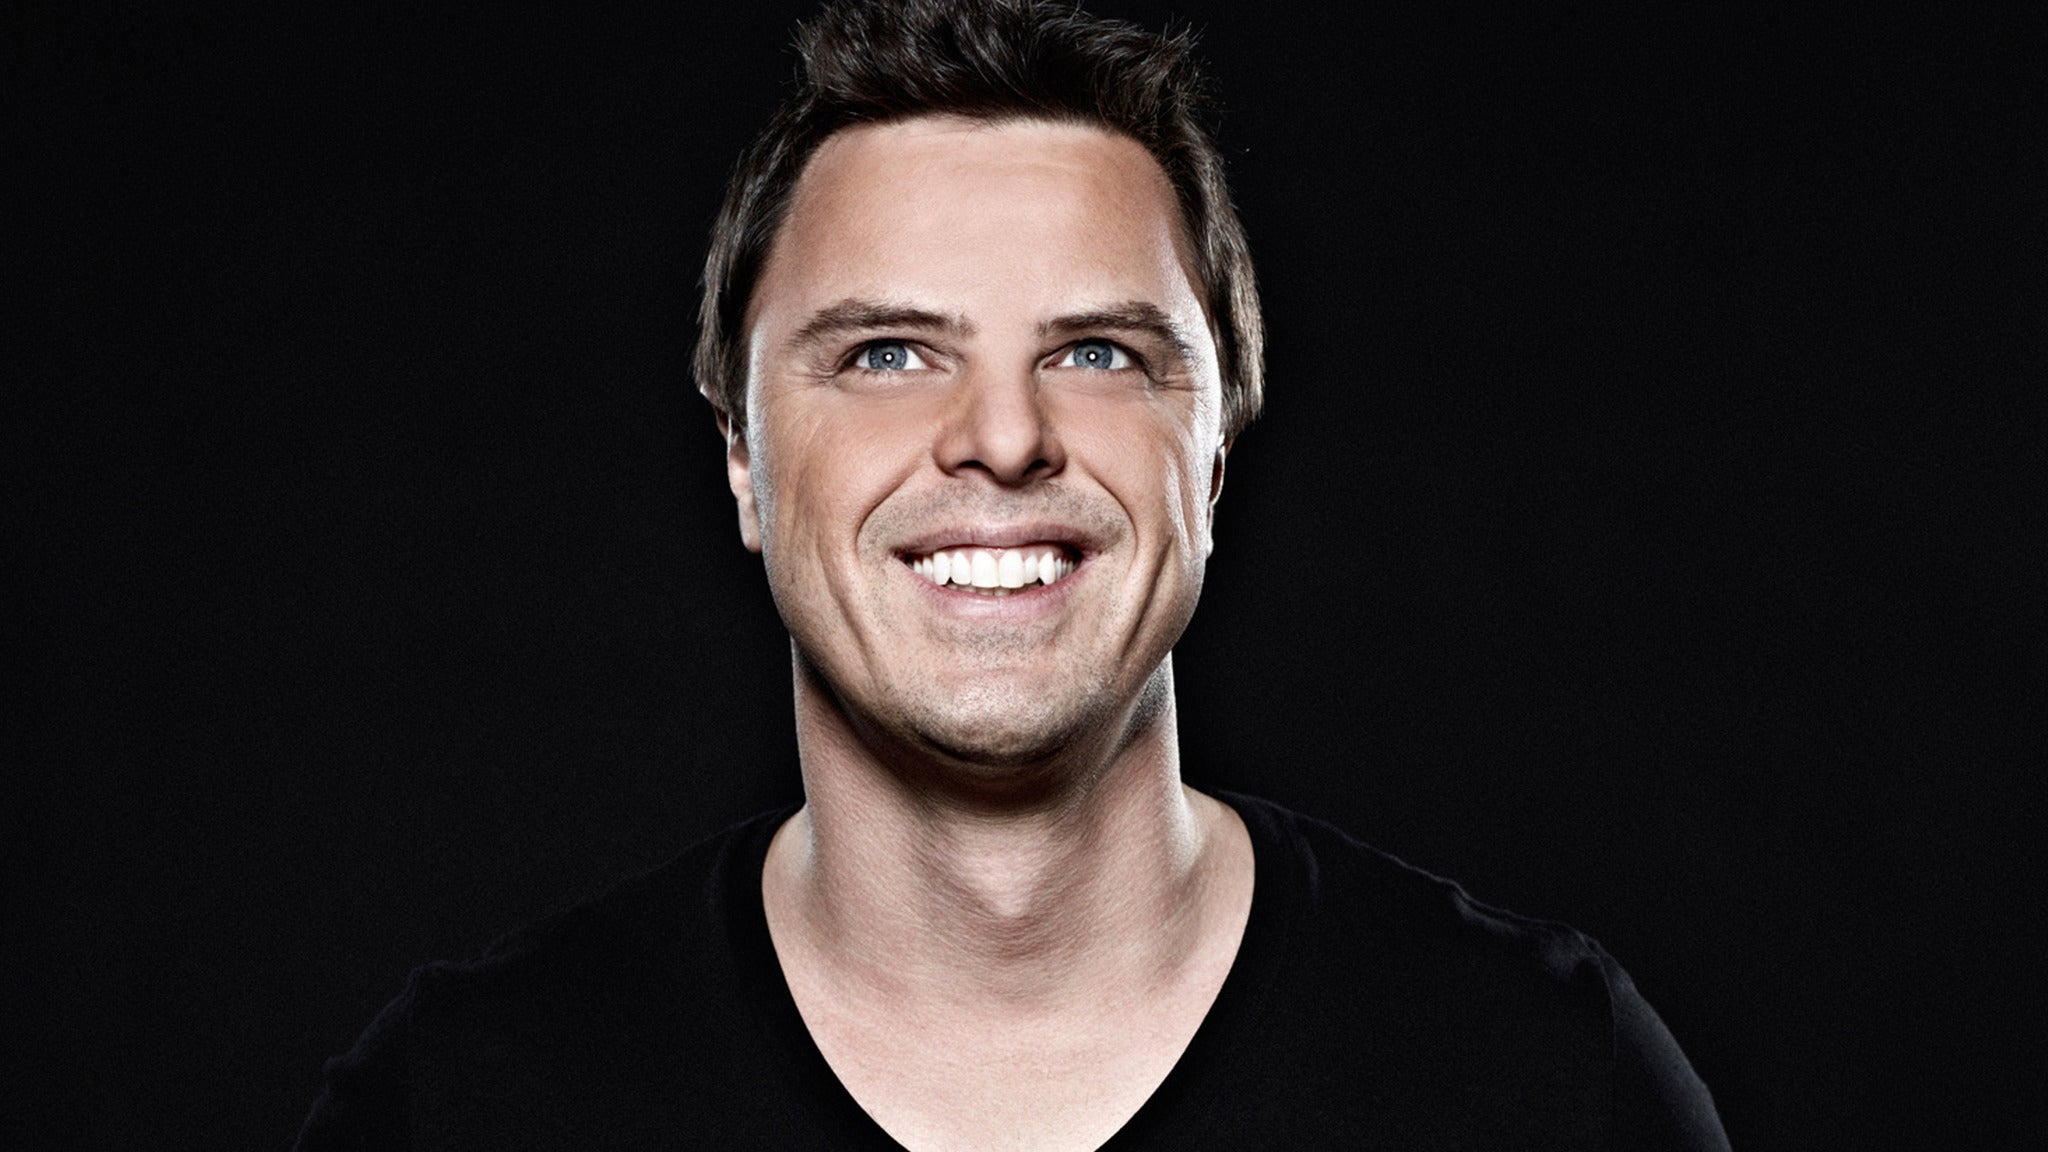 Markus Schulz at Ryse Nightclub